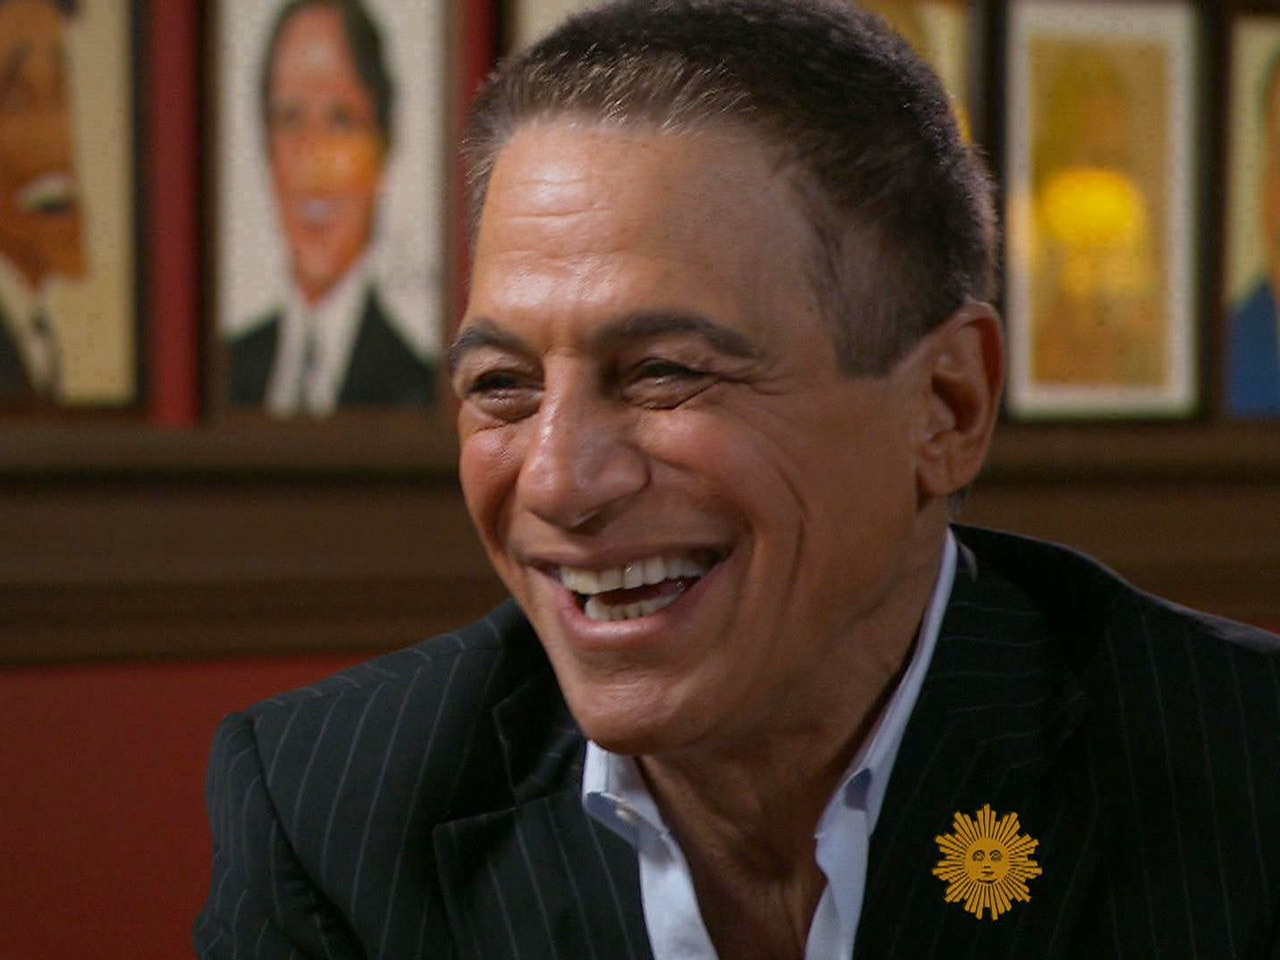 Tony Danza Widescreen